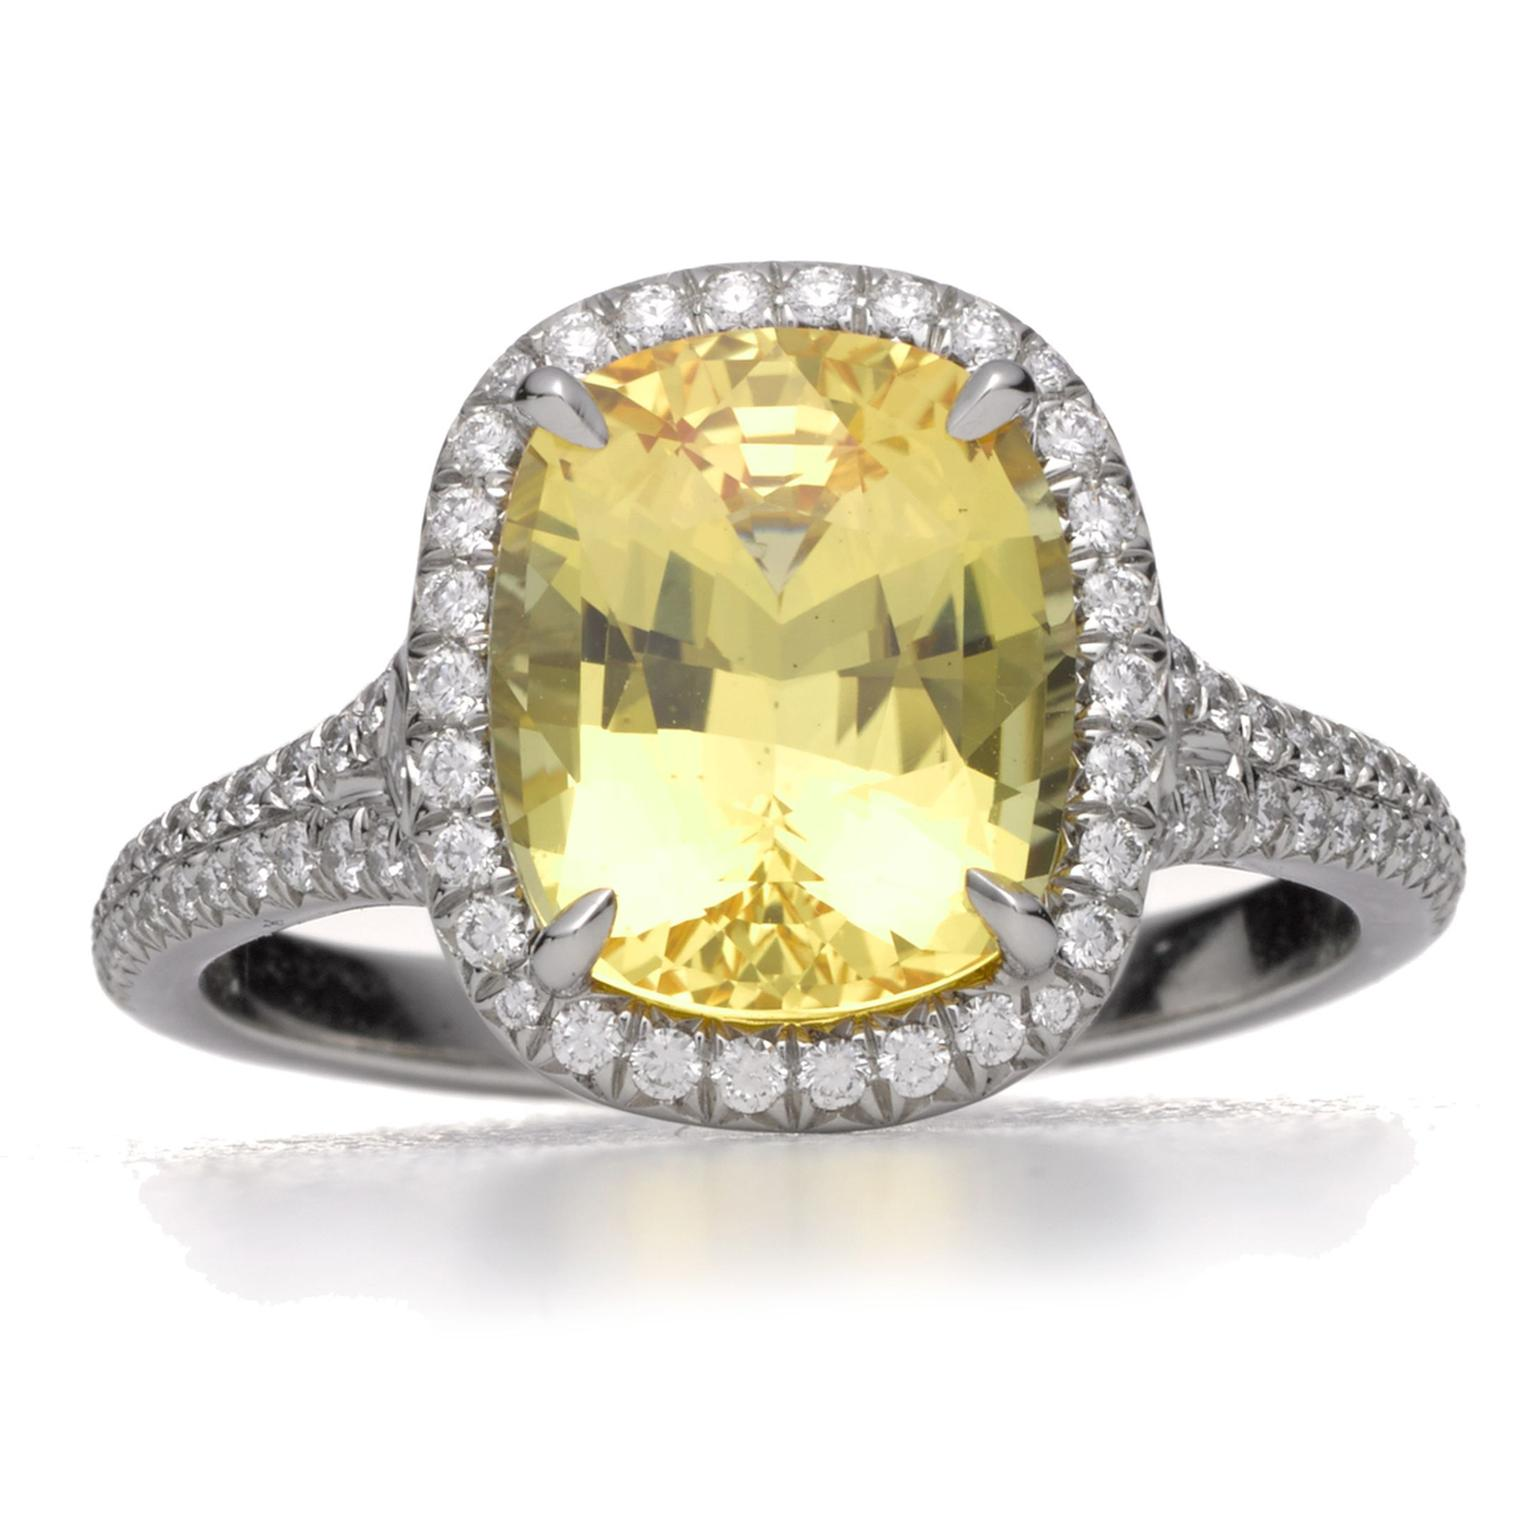 Tiffany yellow sapphire and diamond ring